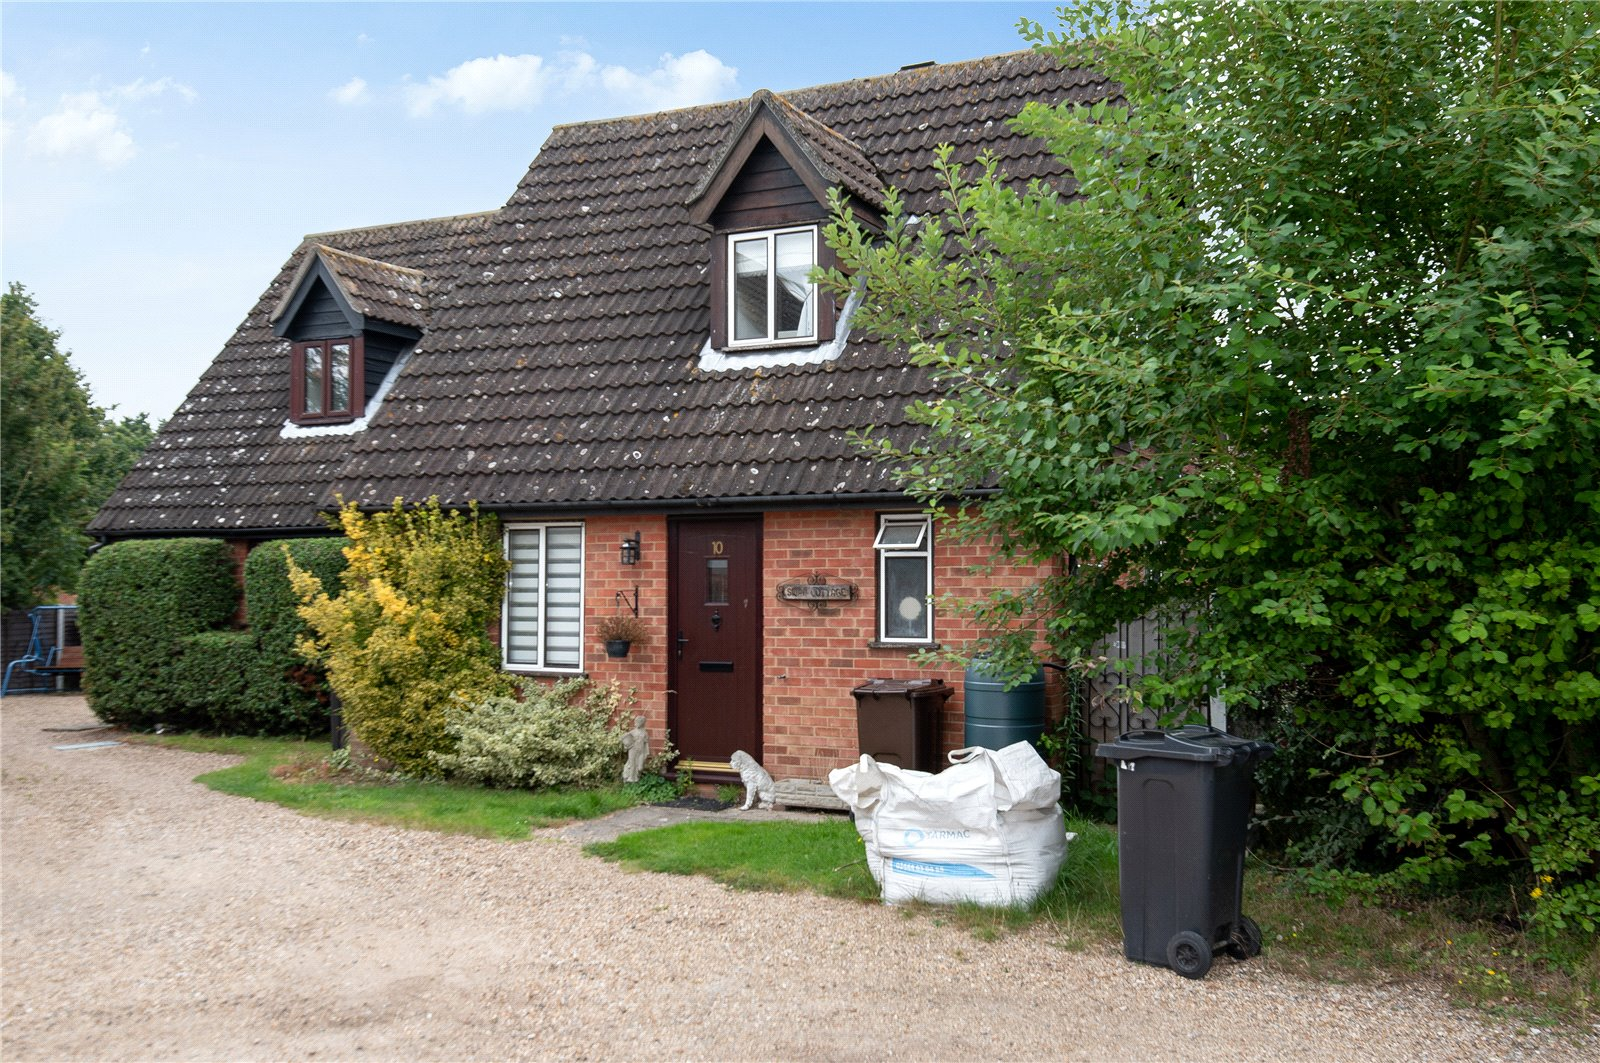 2 bed semi-detached house for sale in Munnings Way, Lawford, Manningtree, CO11